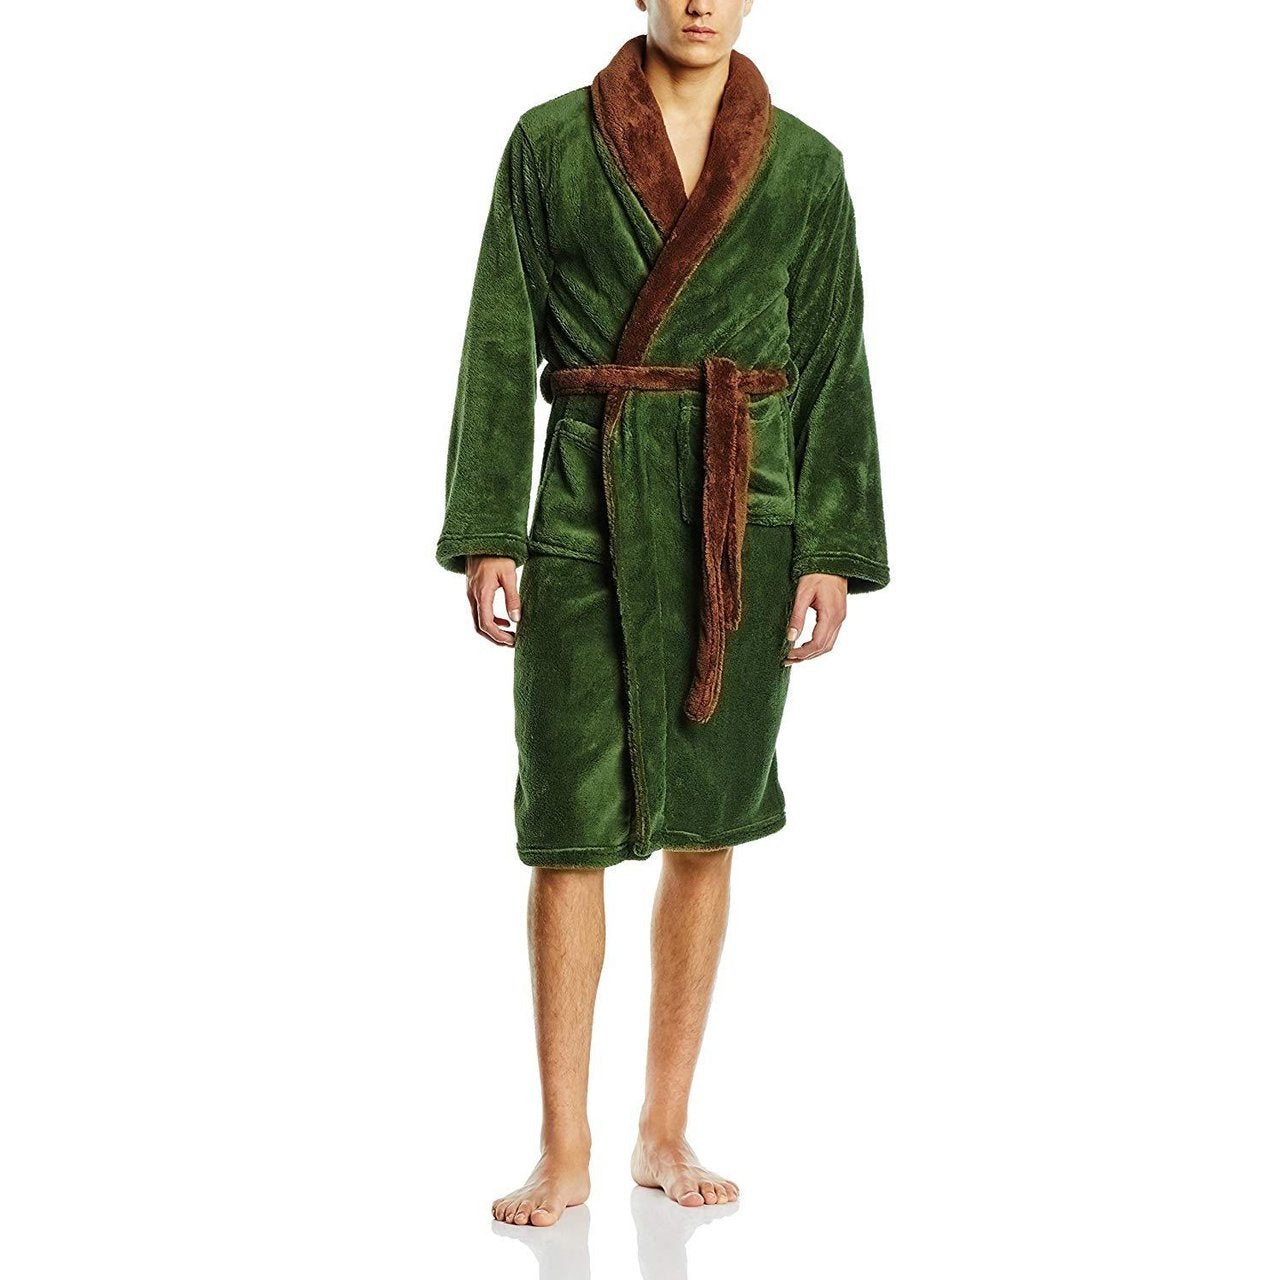 100% Polyester Men's Robe Green/Brown